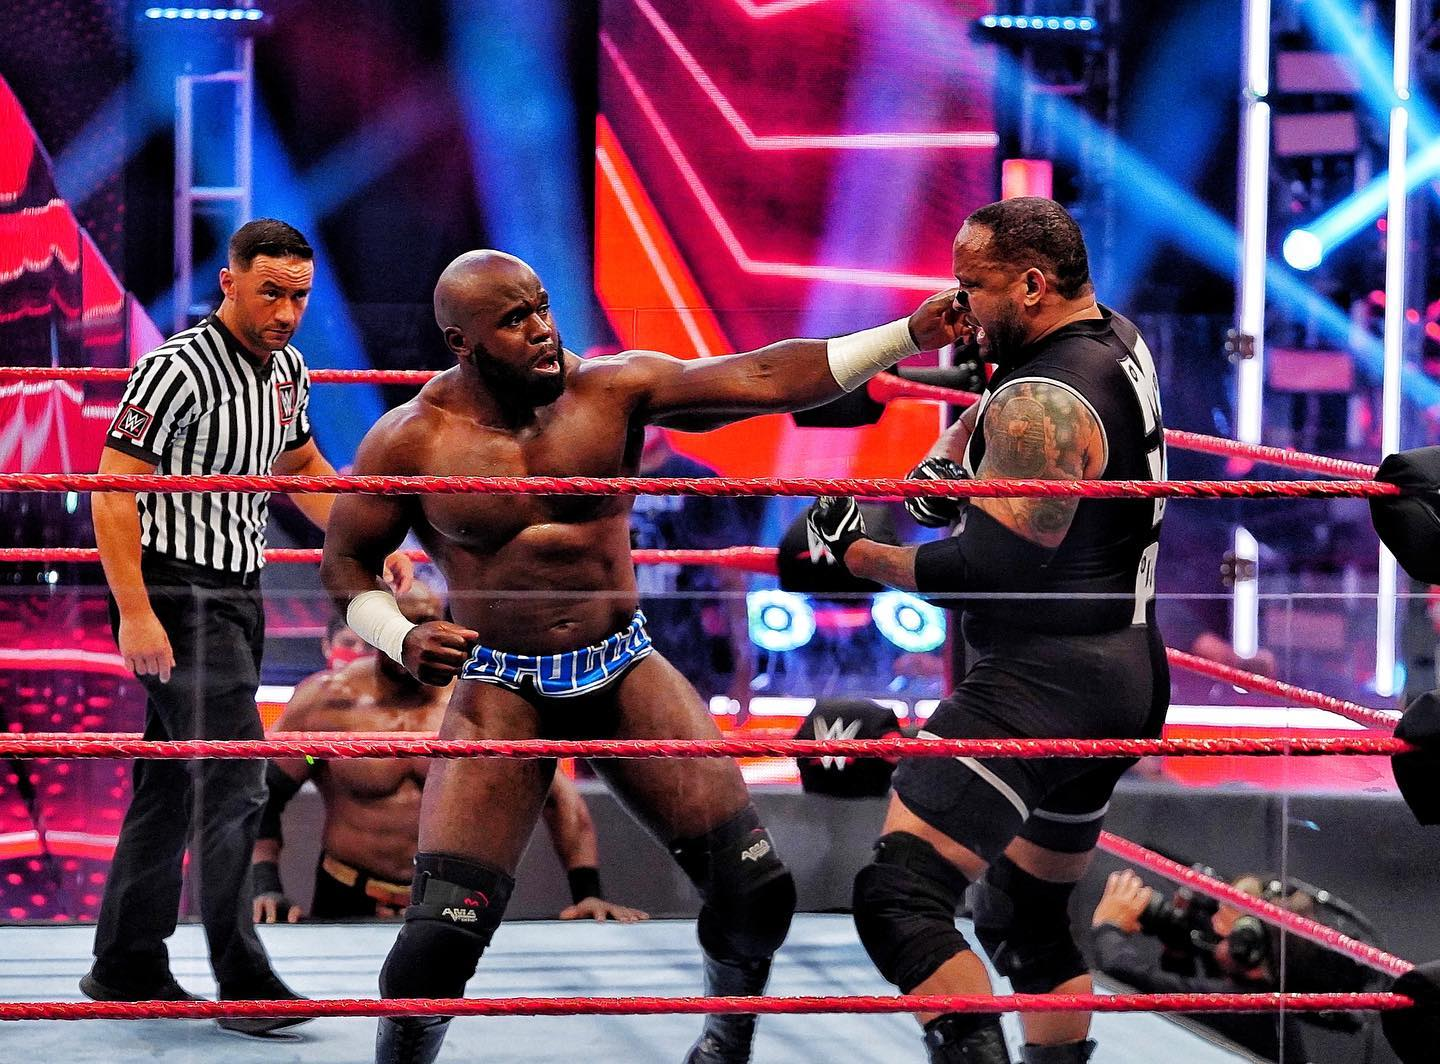 WWE RAW (June 29, 2020) | Live results | Contract signing for Extreme Rules 21